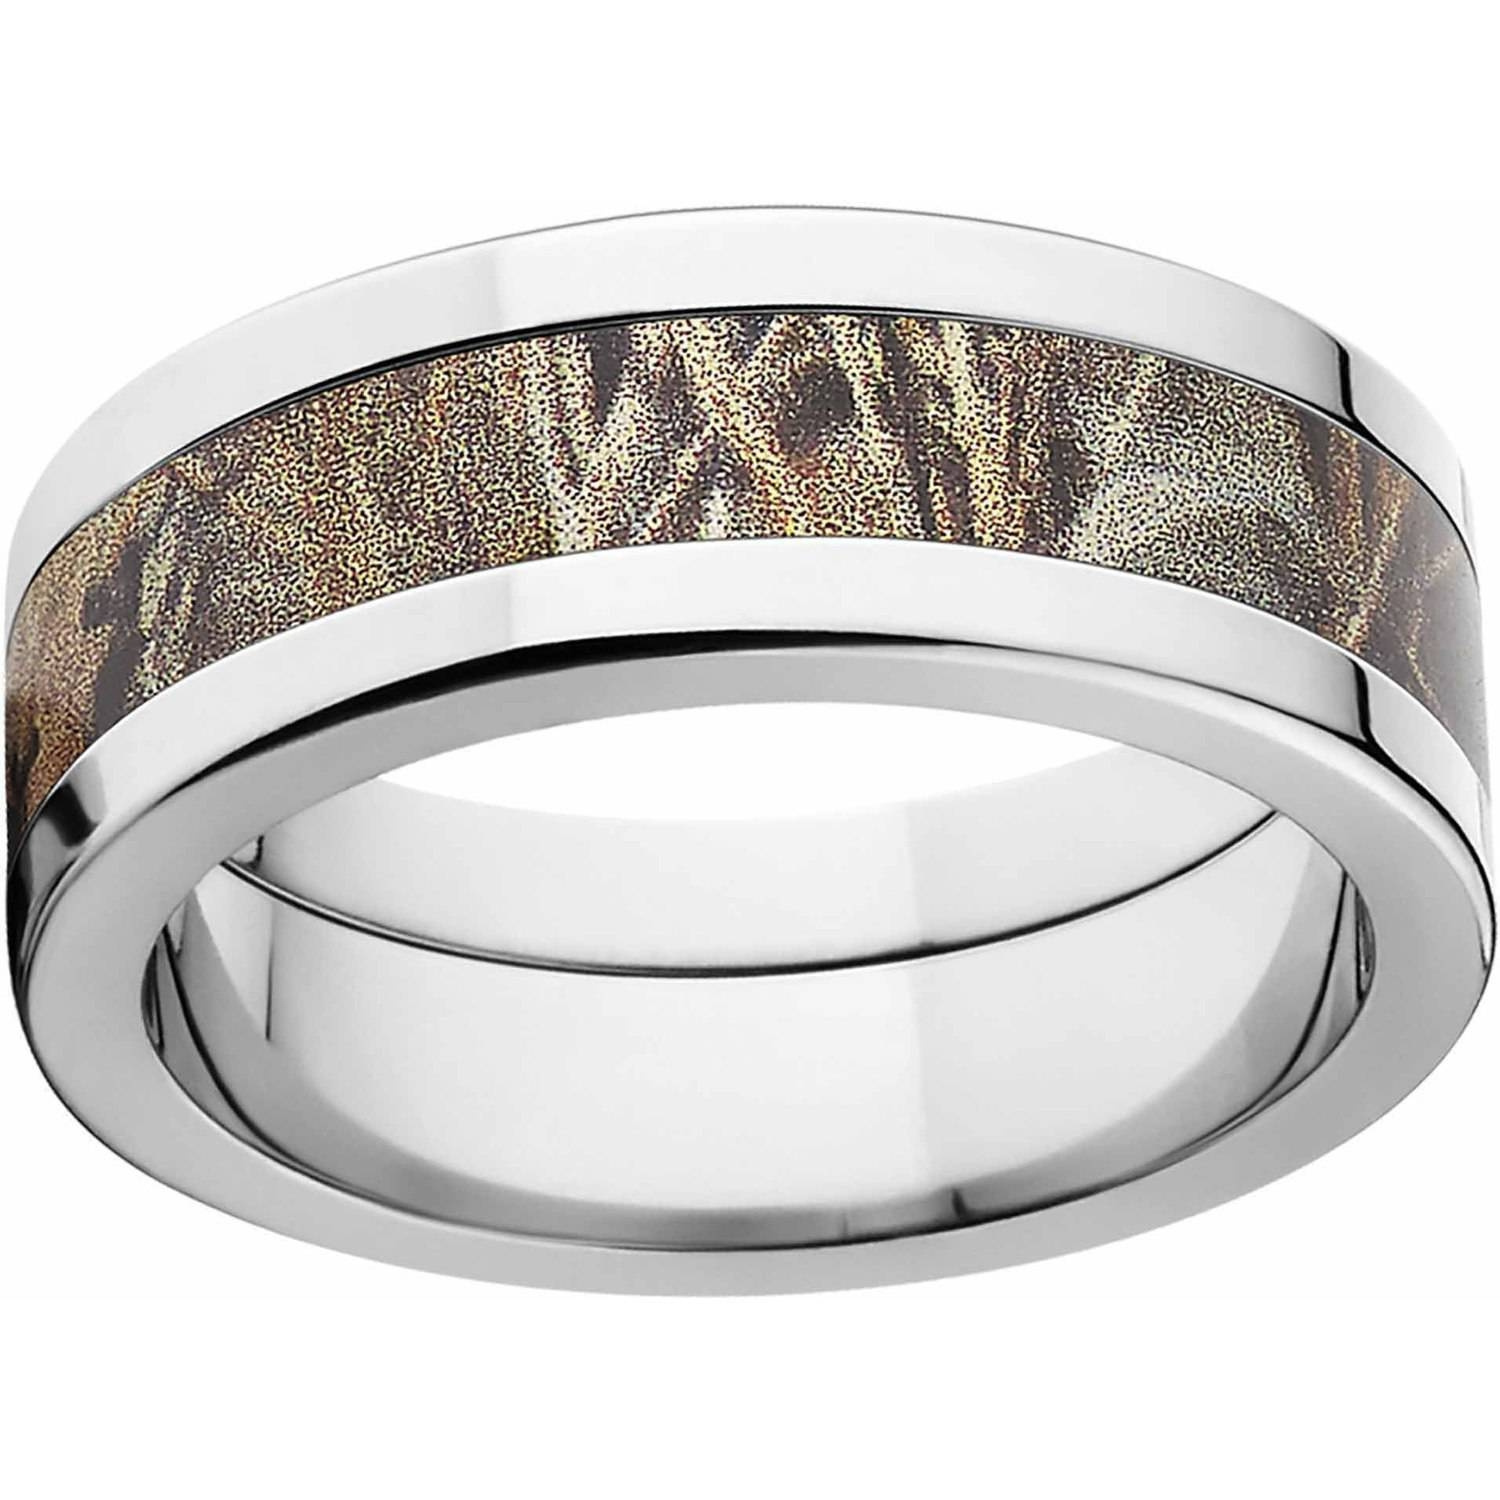 Realtree Max 4 Men's Camo 8Mm Stainless Steel Wedding Band Intended For Wedding Bands At Walmart (View 11 of 15)